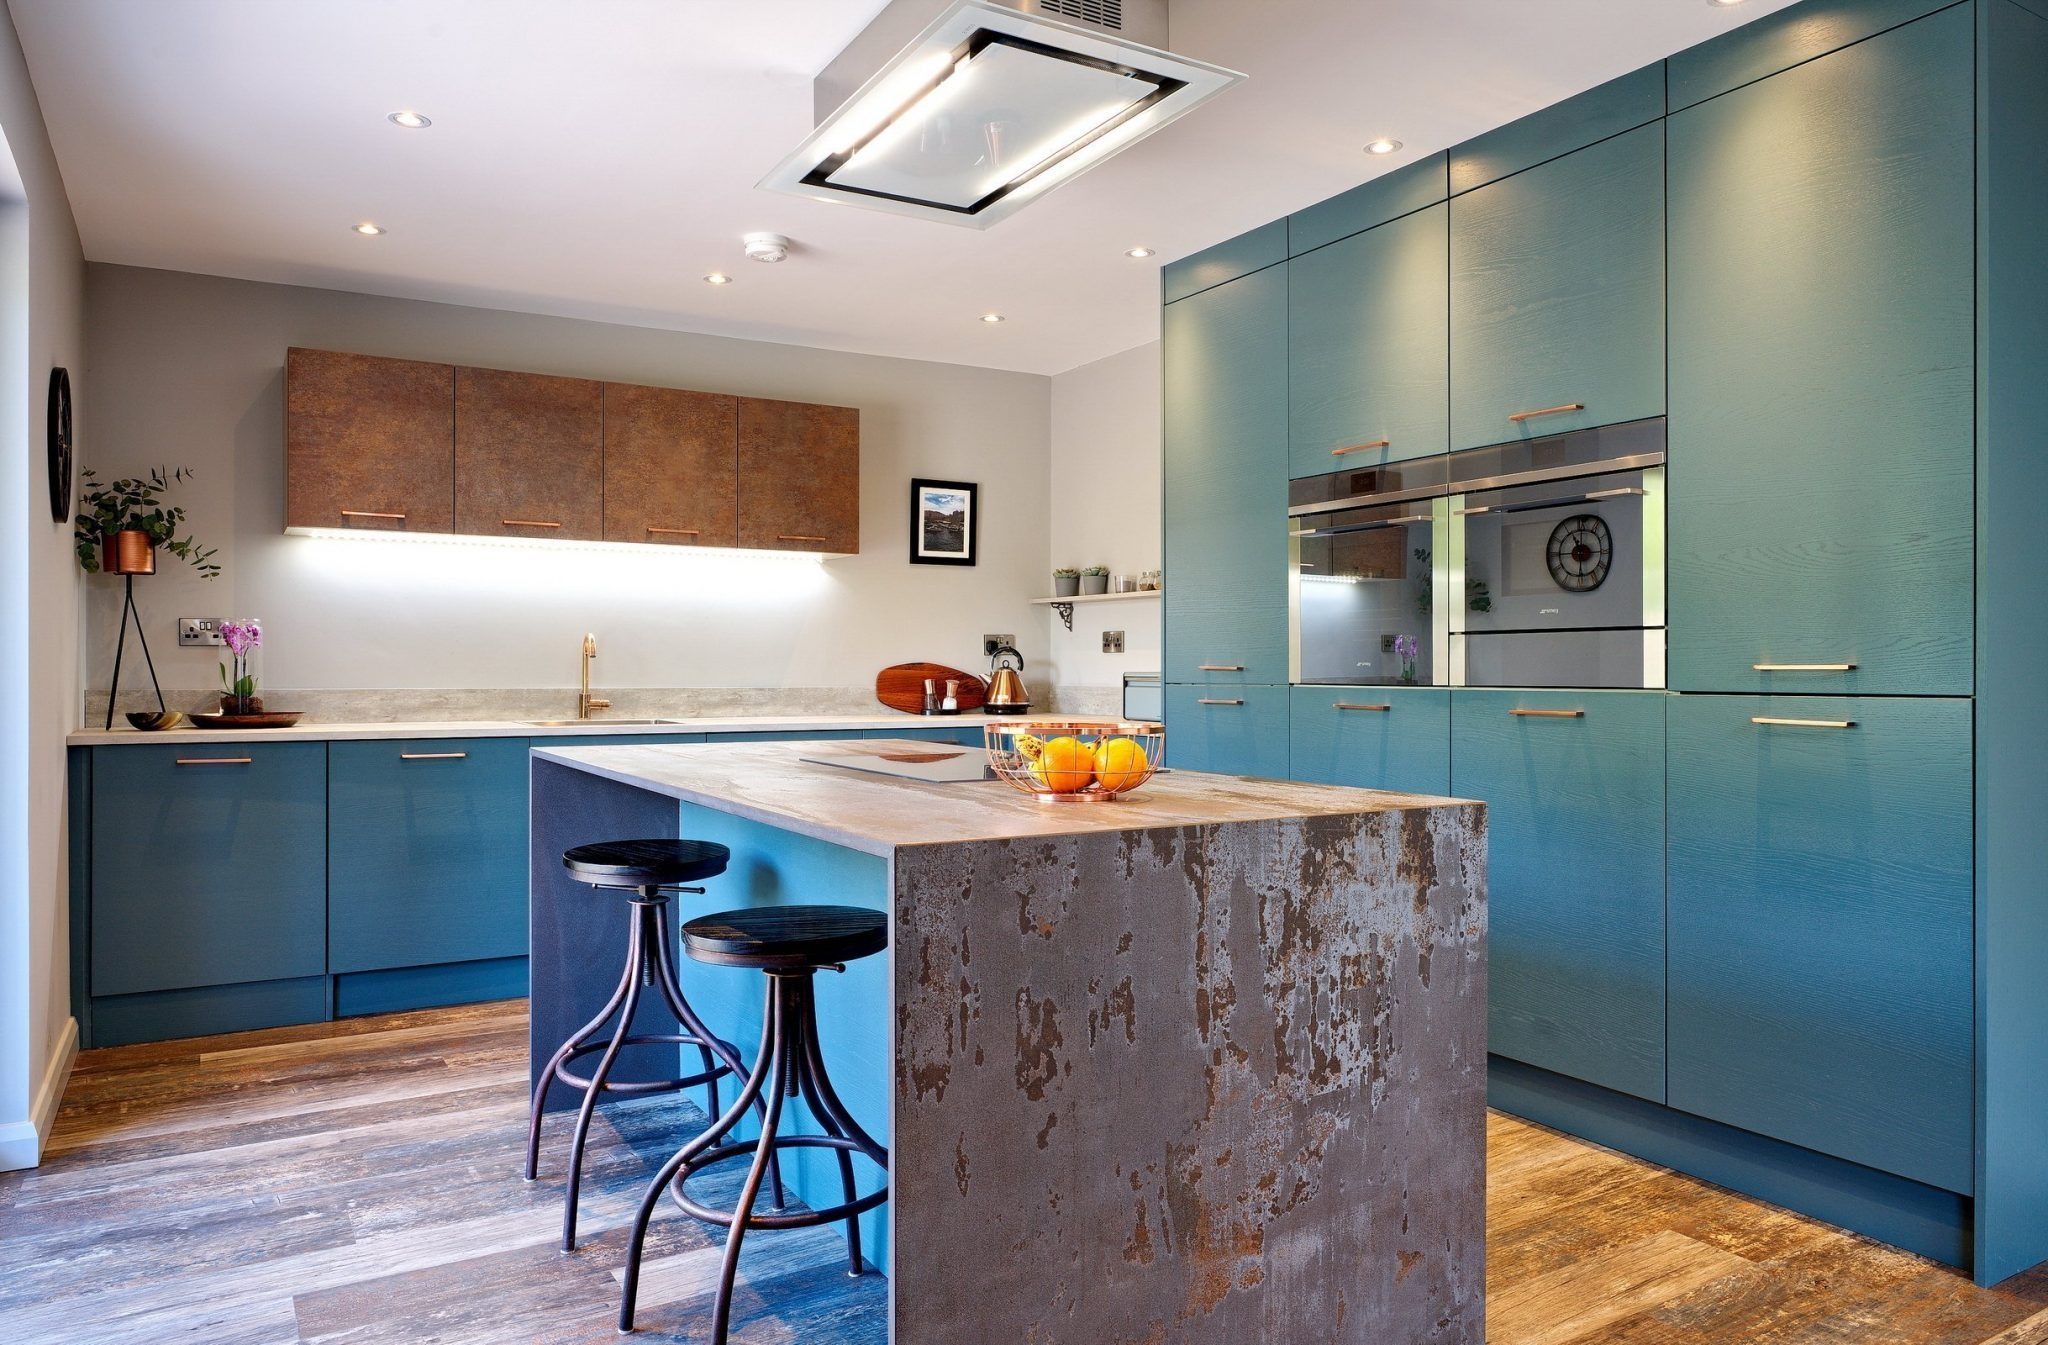 Teal Blue Kitchen with Dekton work surfaces